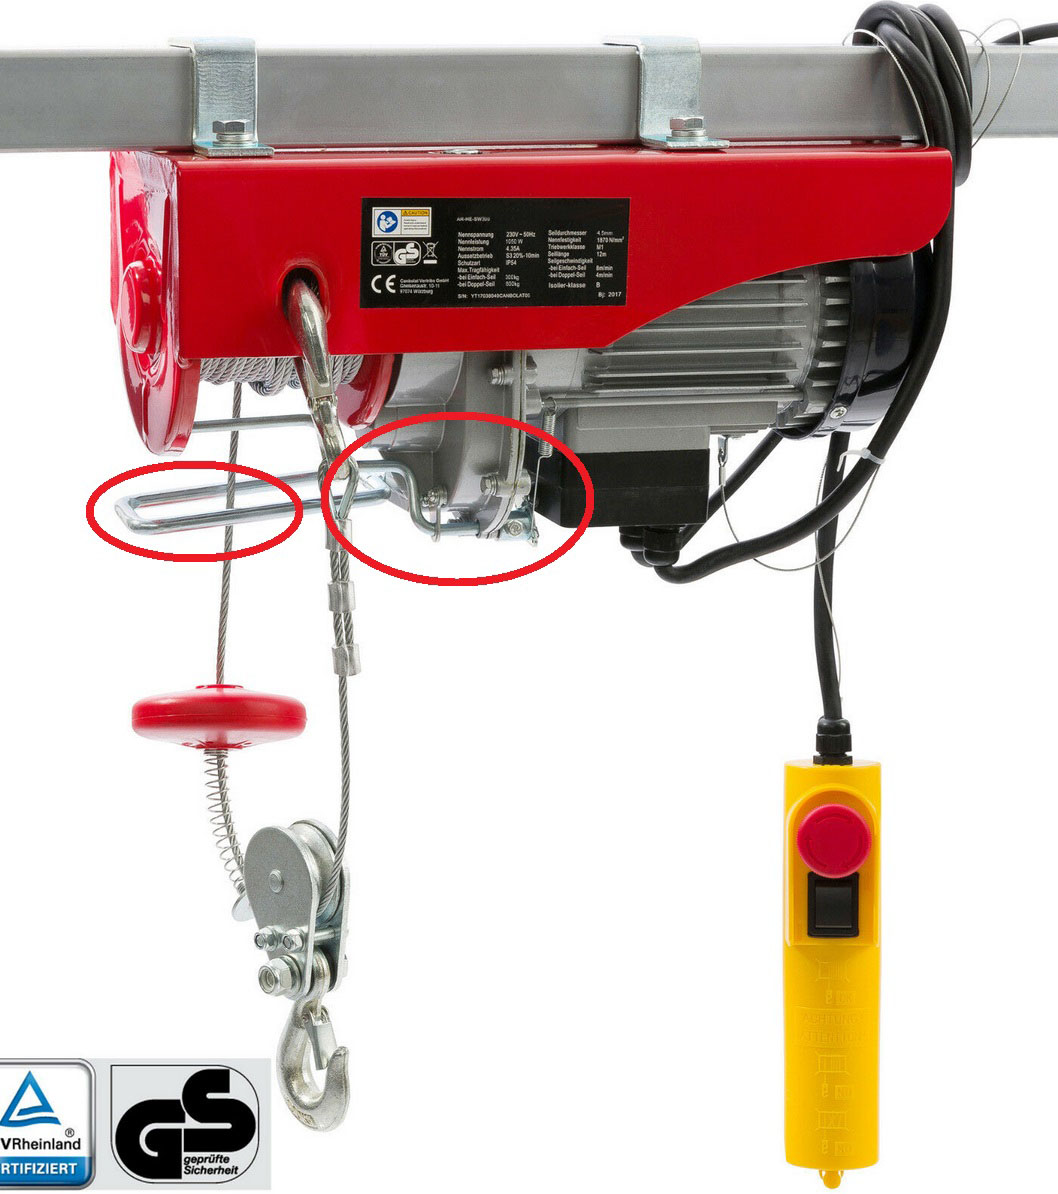 small red circled is up limit switch, while big red circled is down limit switch.jpg